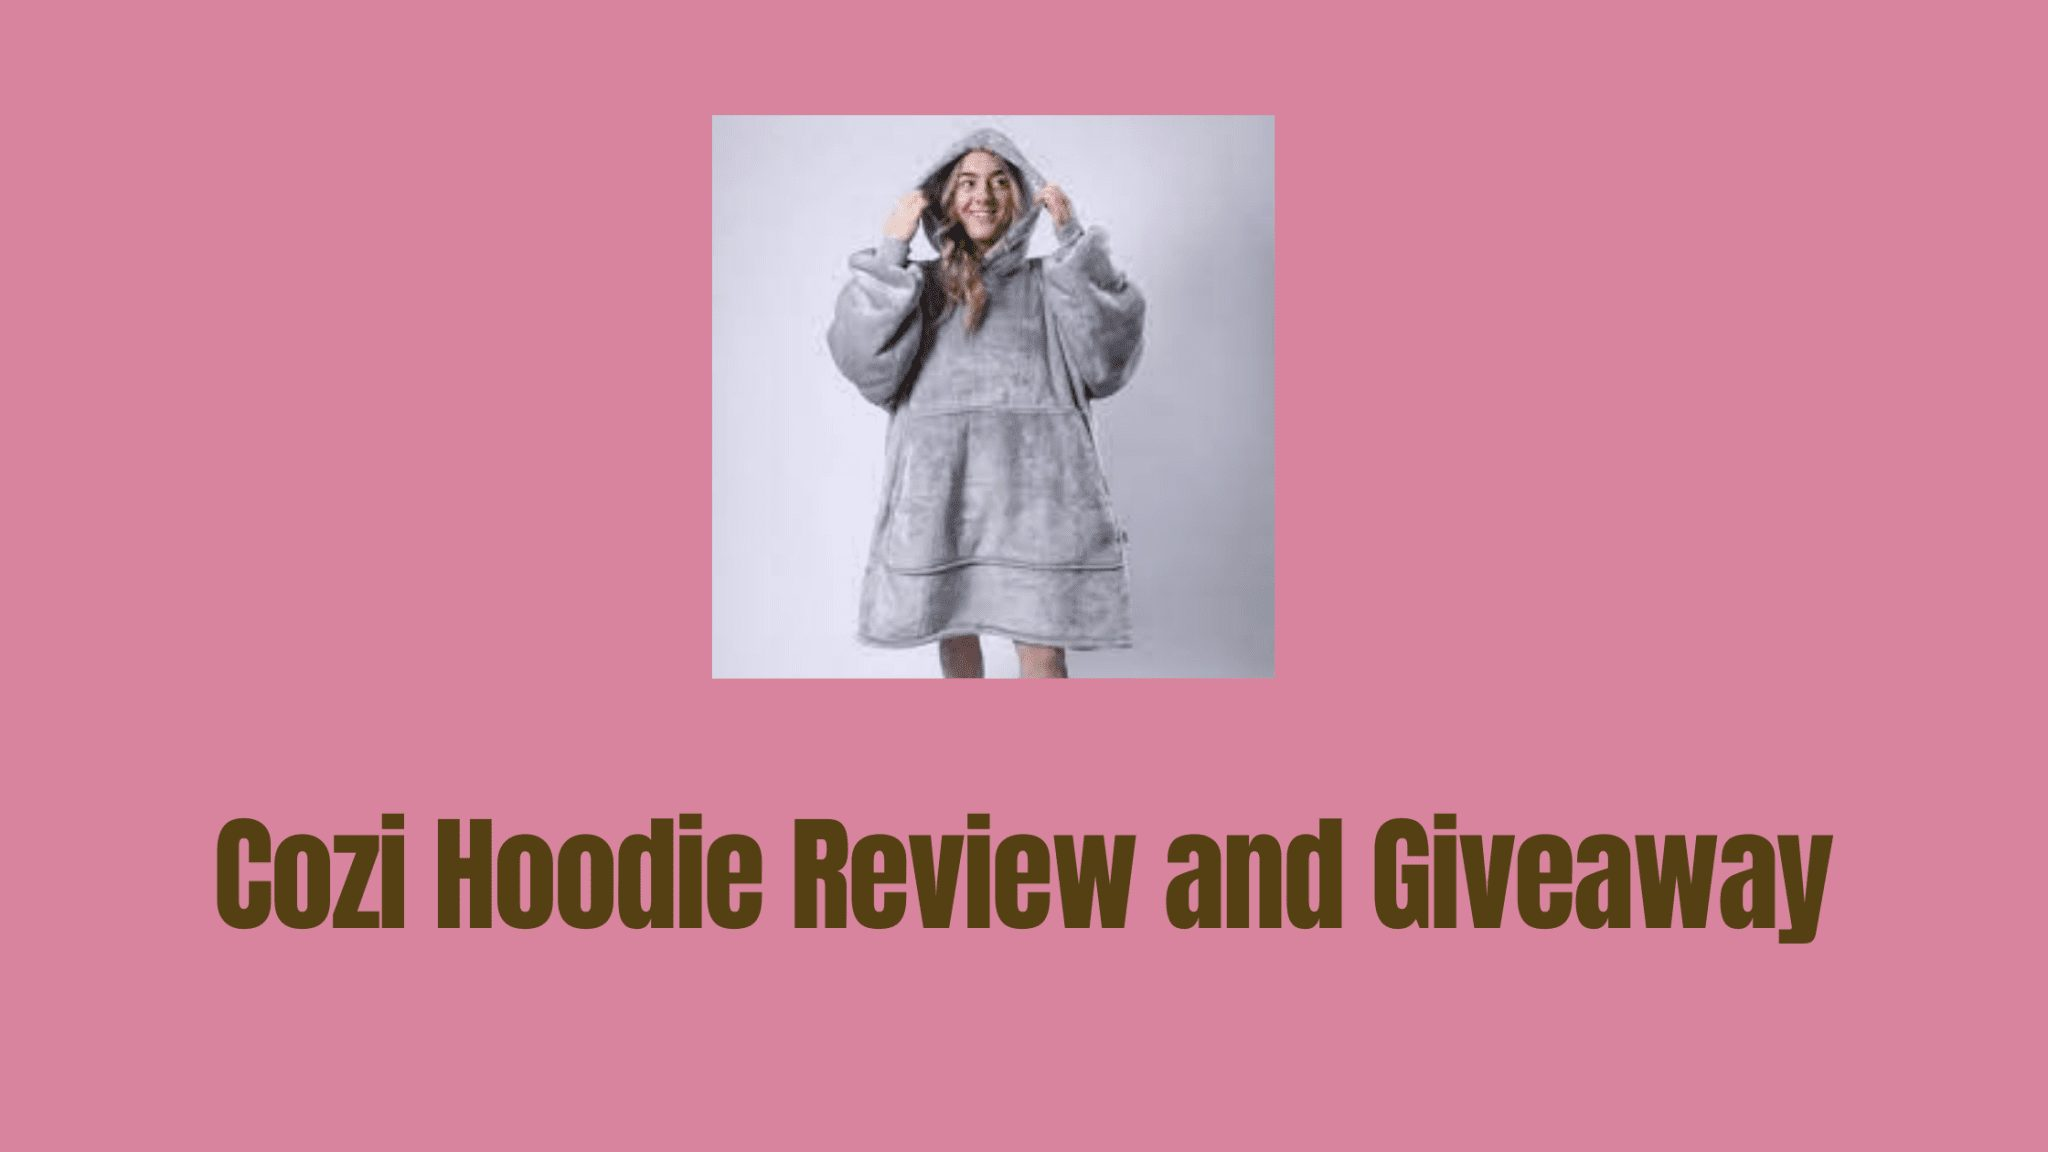 Cozi Hoodie Review and Giveaway